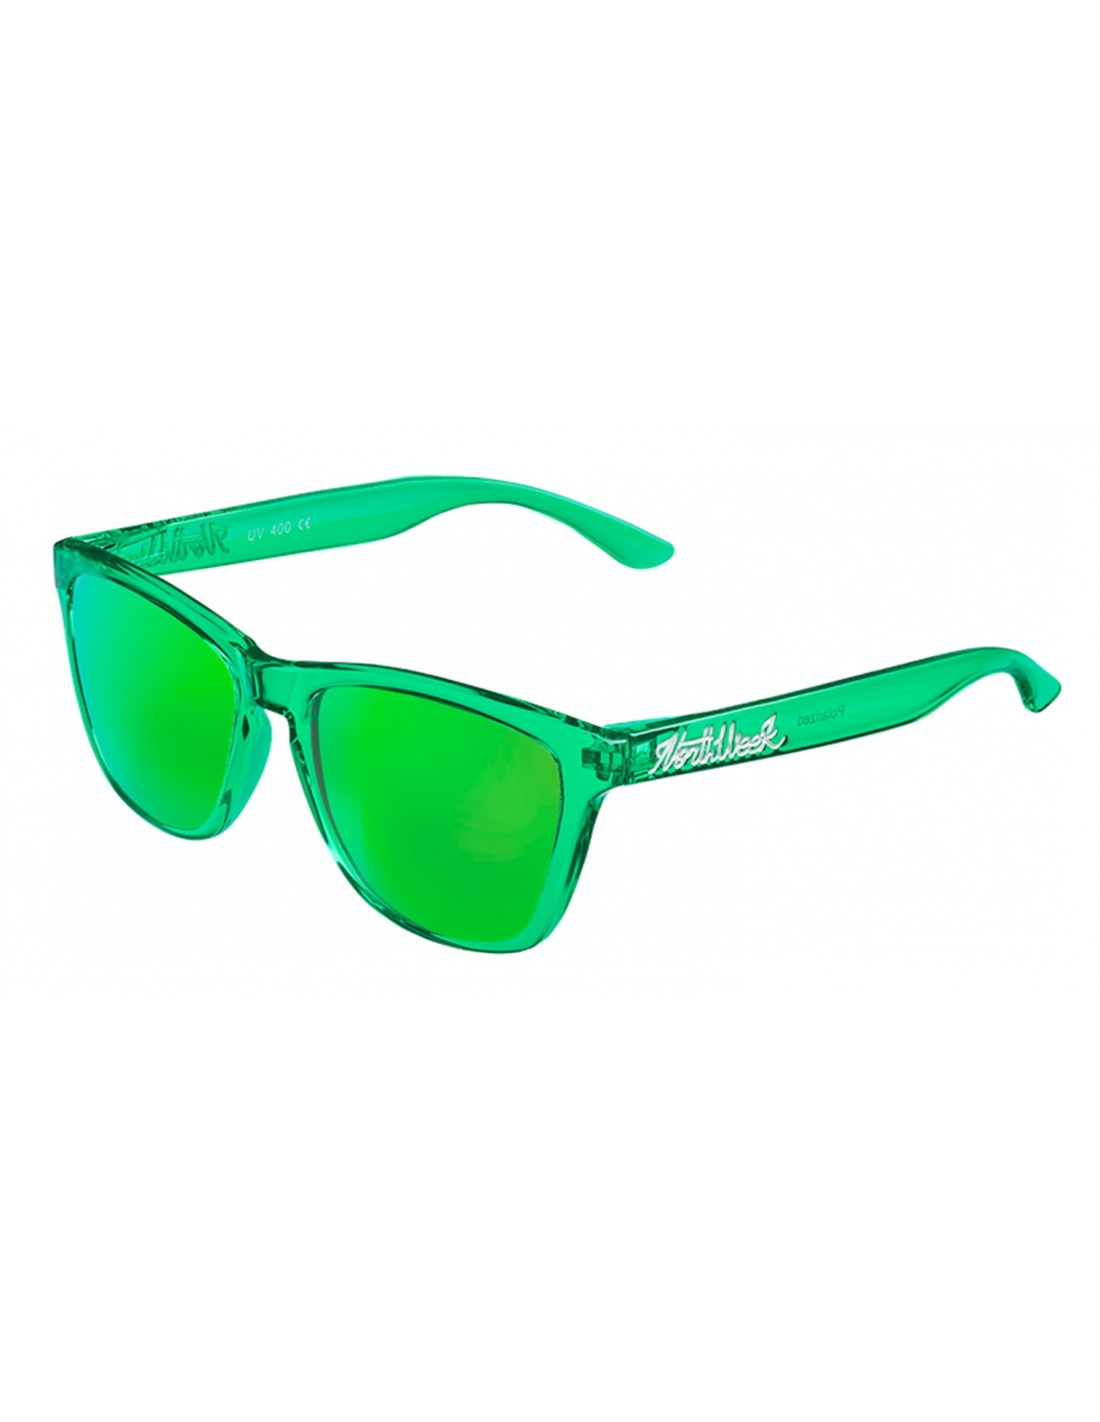 Gafas de sol Northweek ALL Aquamarina Q87fqMBZk